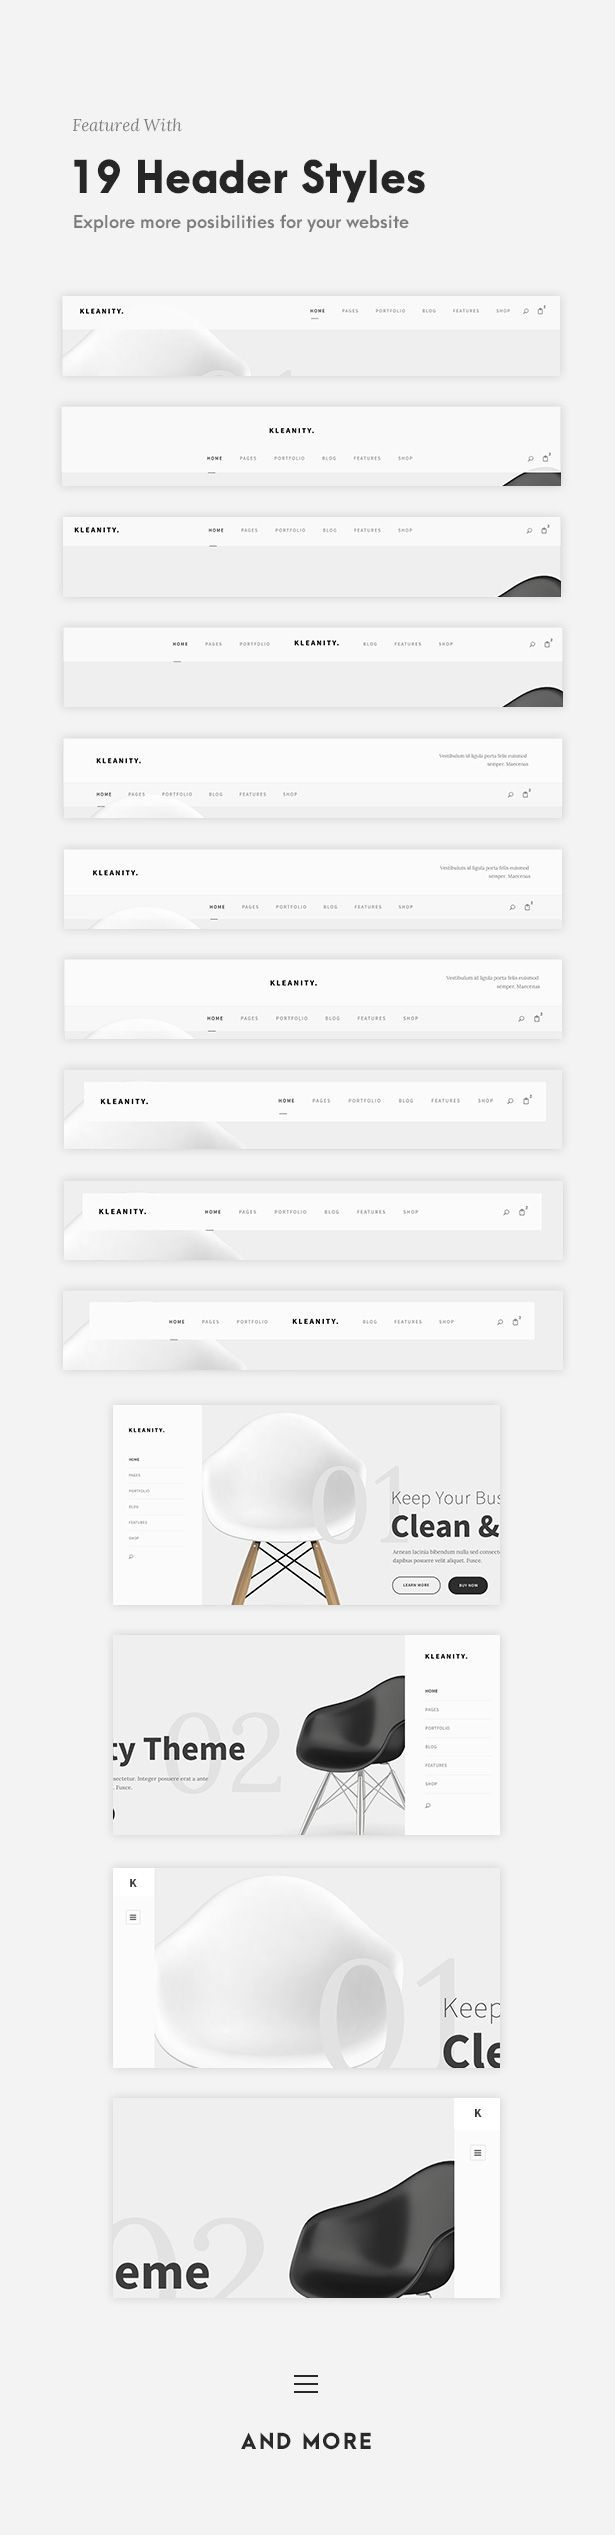 Kleanity - Minimalist WordPress Theme / Creative Portfolio #agency #artist #business • Download ➝ https://themeforest.net/item/kleanity-minimalist-wordpress-theme-creative-portfolio/19133384?ref=pxcr Looking for Food? Download the FREE unique Amazon Discount Finder Chrome Extension now! http://wp.me/p4YZIc-2Bg #deal